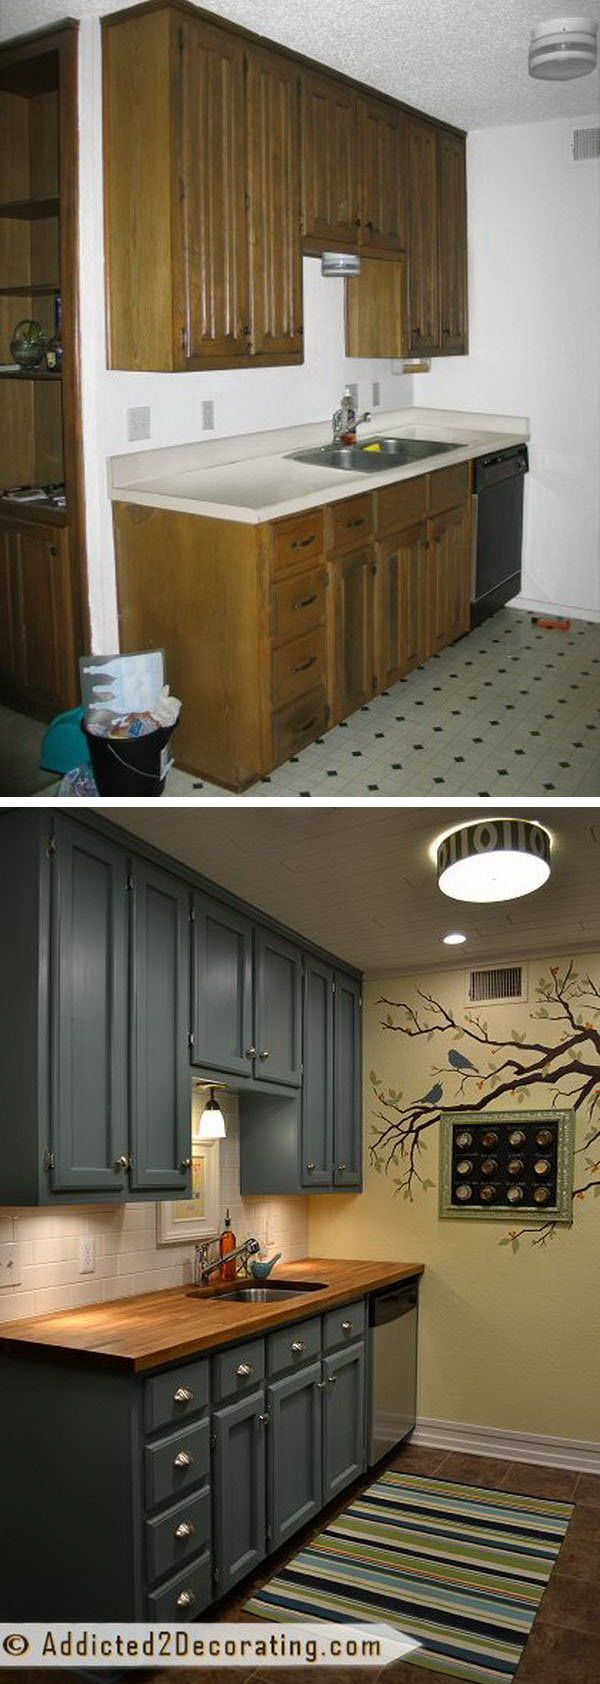 kitchen makeover ideas Before and After 25 Budget Friendly Kitchen Makeover Ideas Cabinets House and Countertops